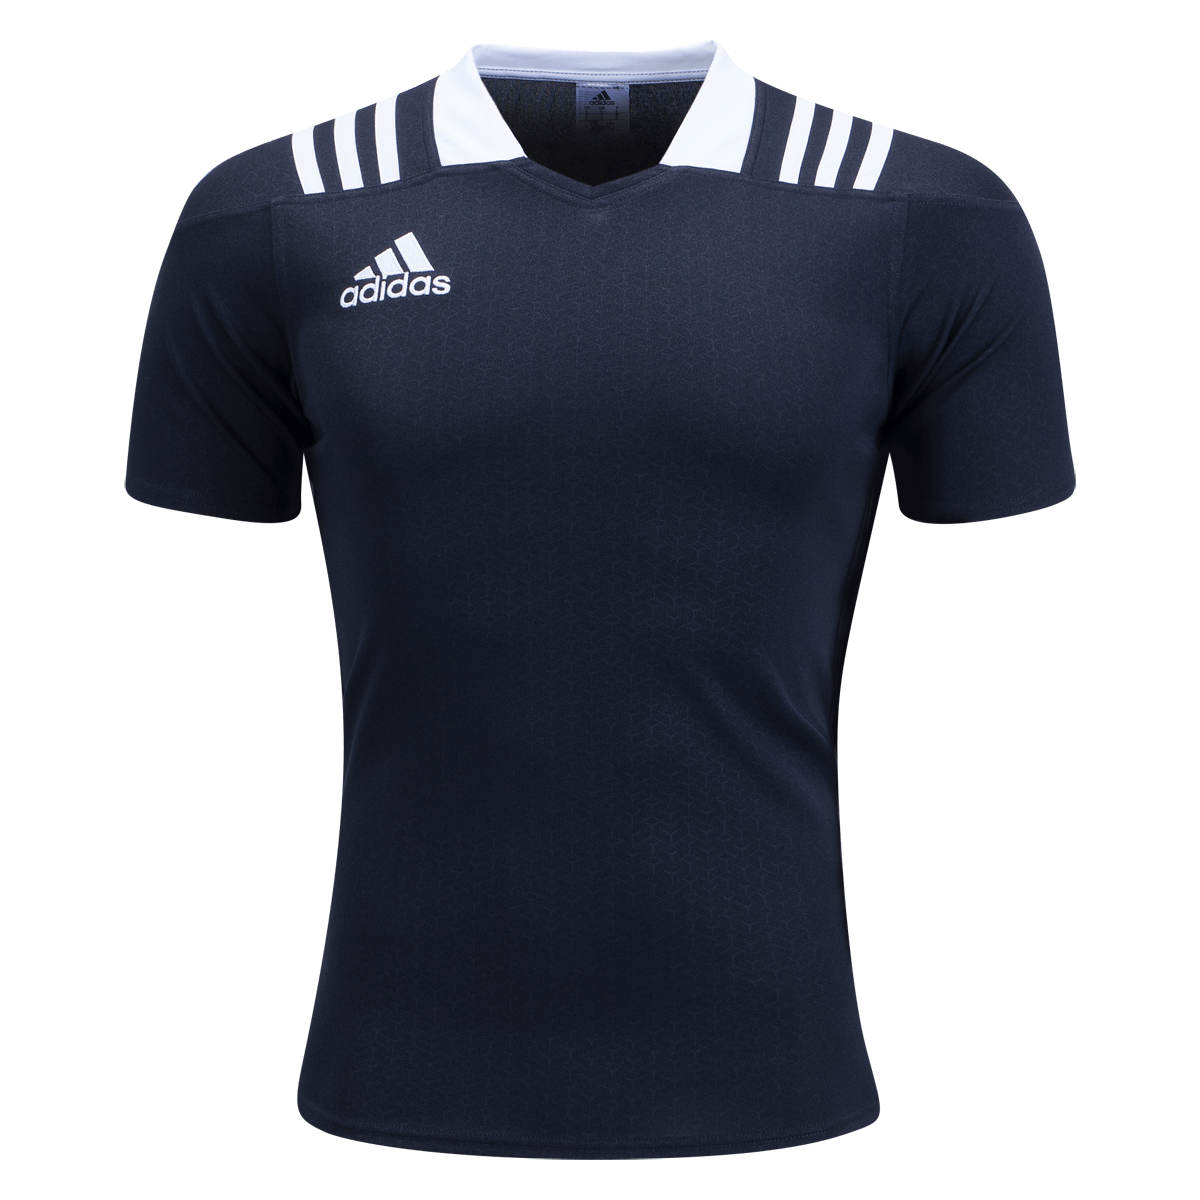 Front View of Adidas Black/White 3 Stripes Fitted Jersey